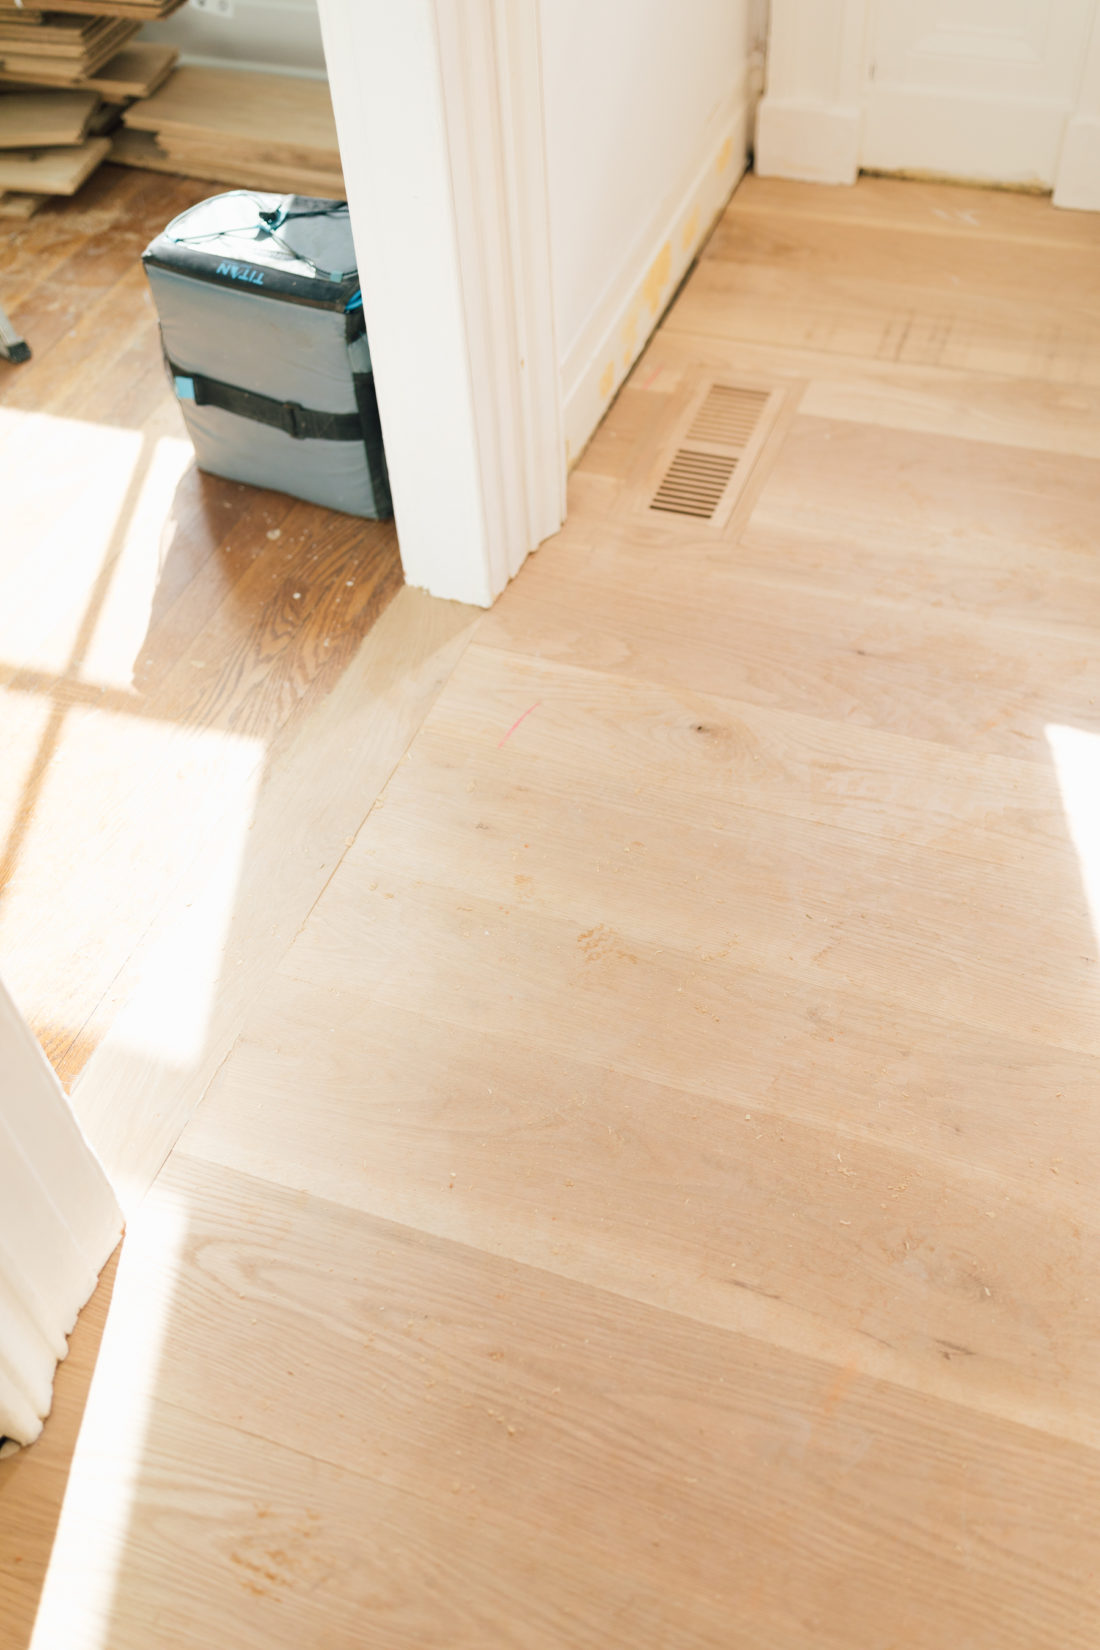 Eva Amurri Martino shows off the stripped floors during the renovation of her historic home.